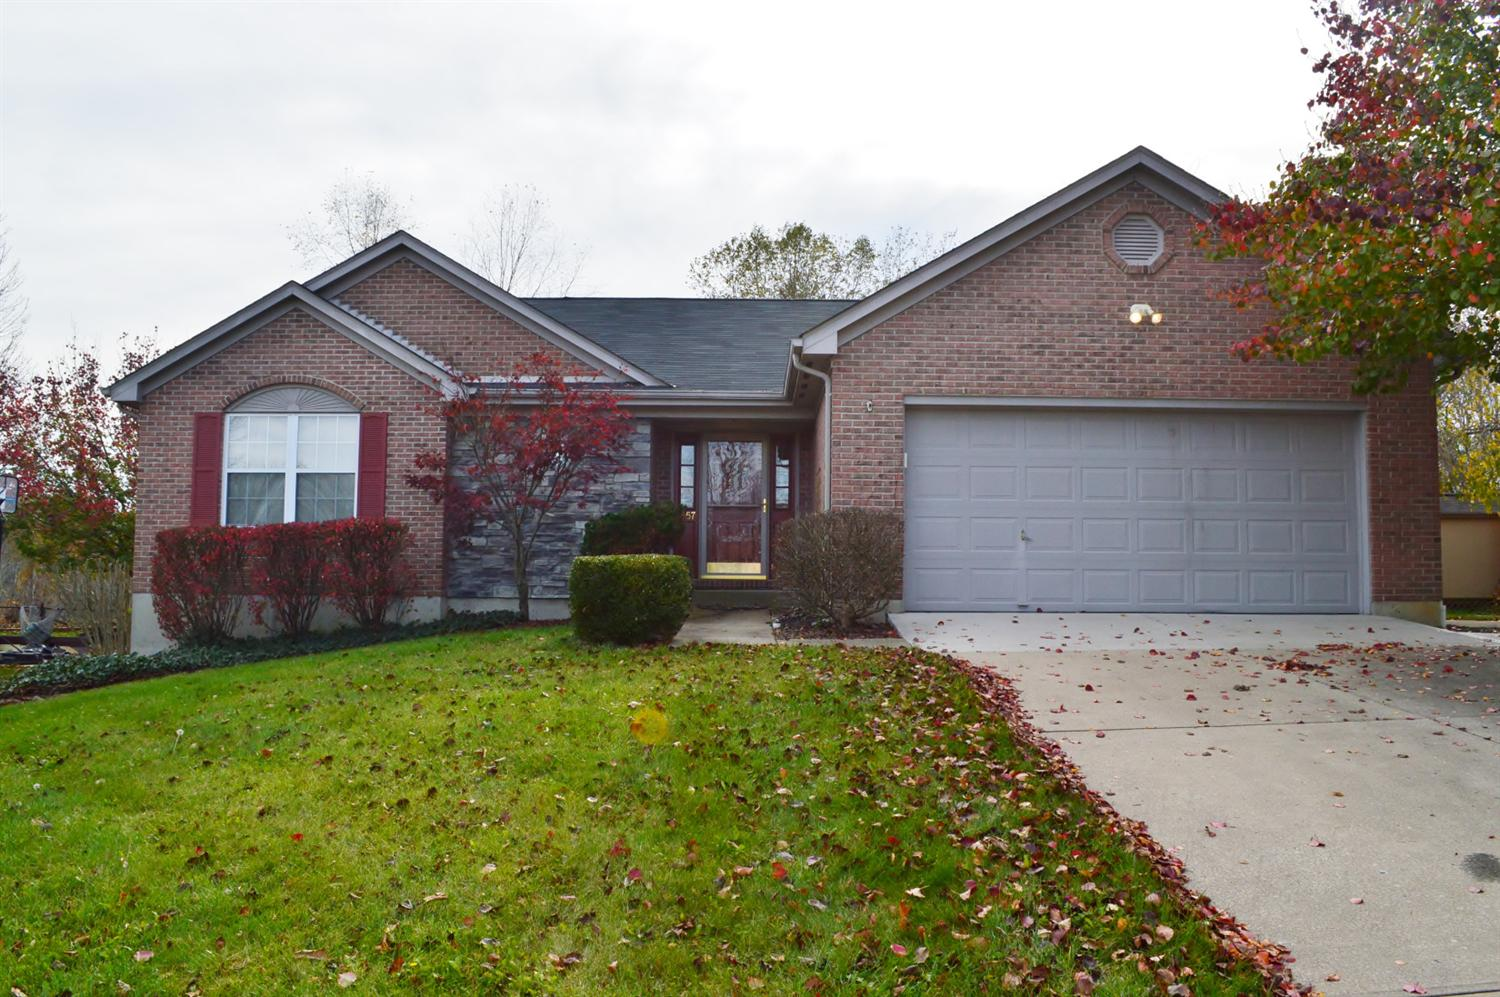 Photo 1 for 2157 Stoneharbor Ln Independence, KY 41051